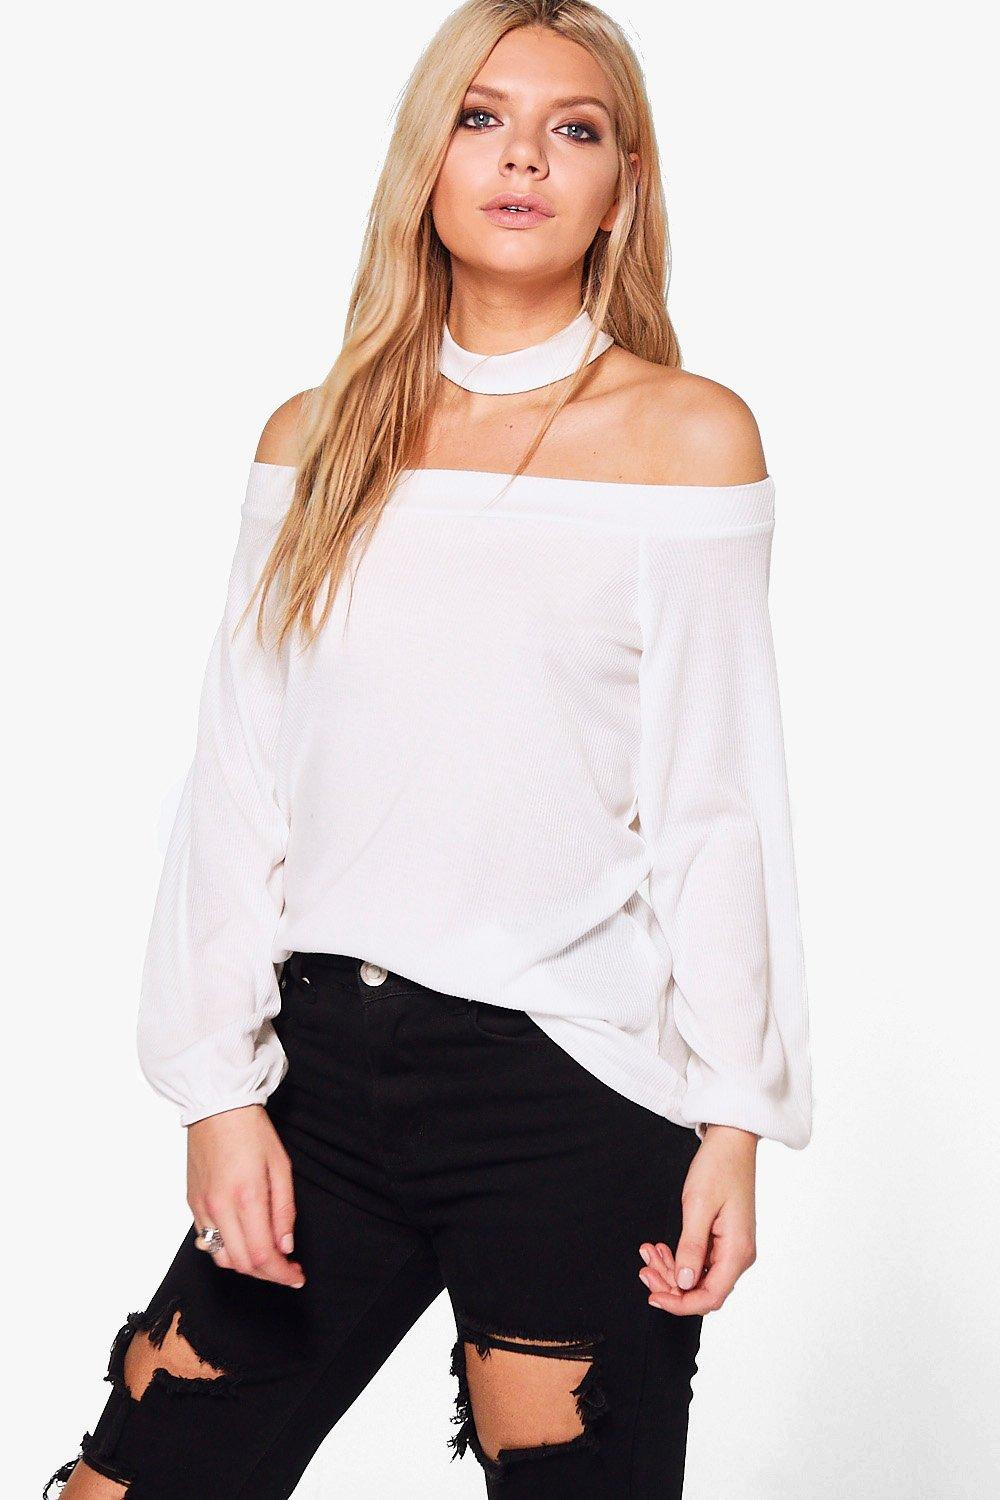 Tops. We like to think of our tops as instant outfit-makers—and cute tops are always in-stock at LOFT. We have feminine women's tops to fit any style, from our polished, fashionable tops for work to trendy tops for parties and casual tops for the weekend.